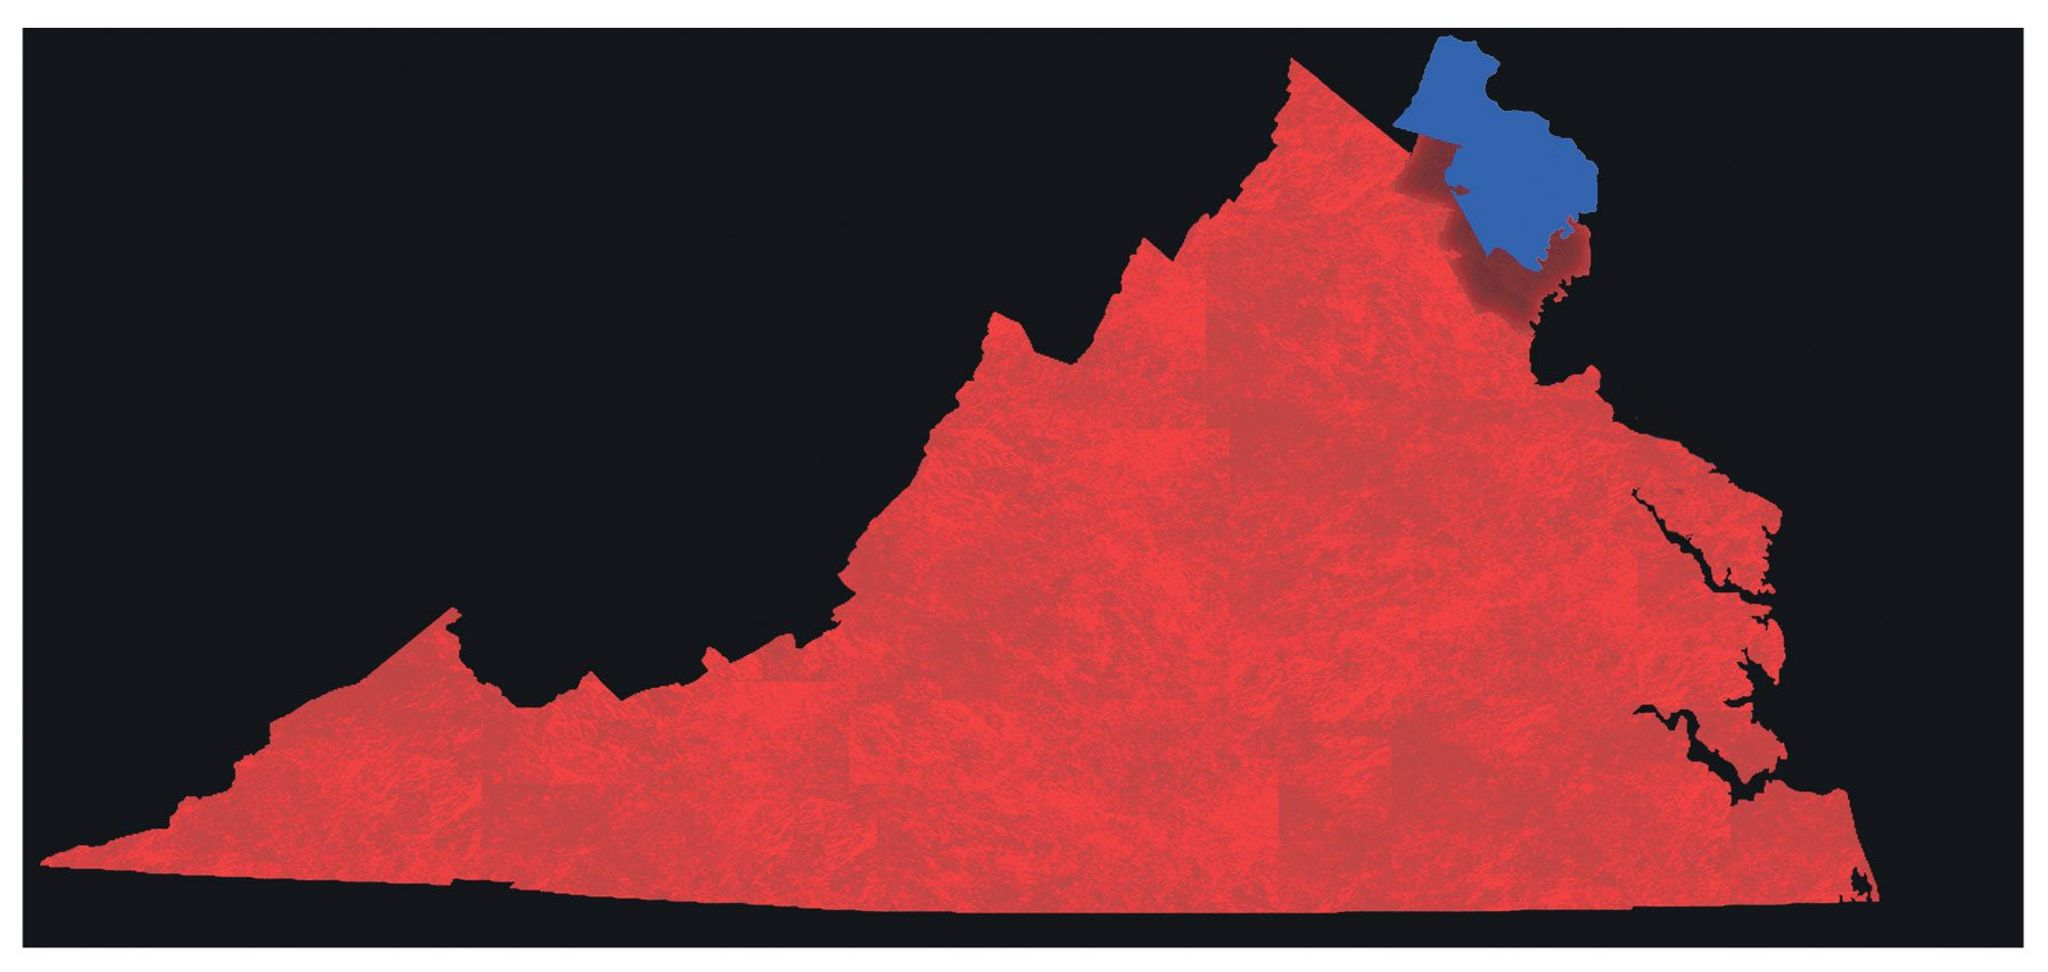 The 'Californication' of Virginia